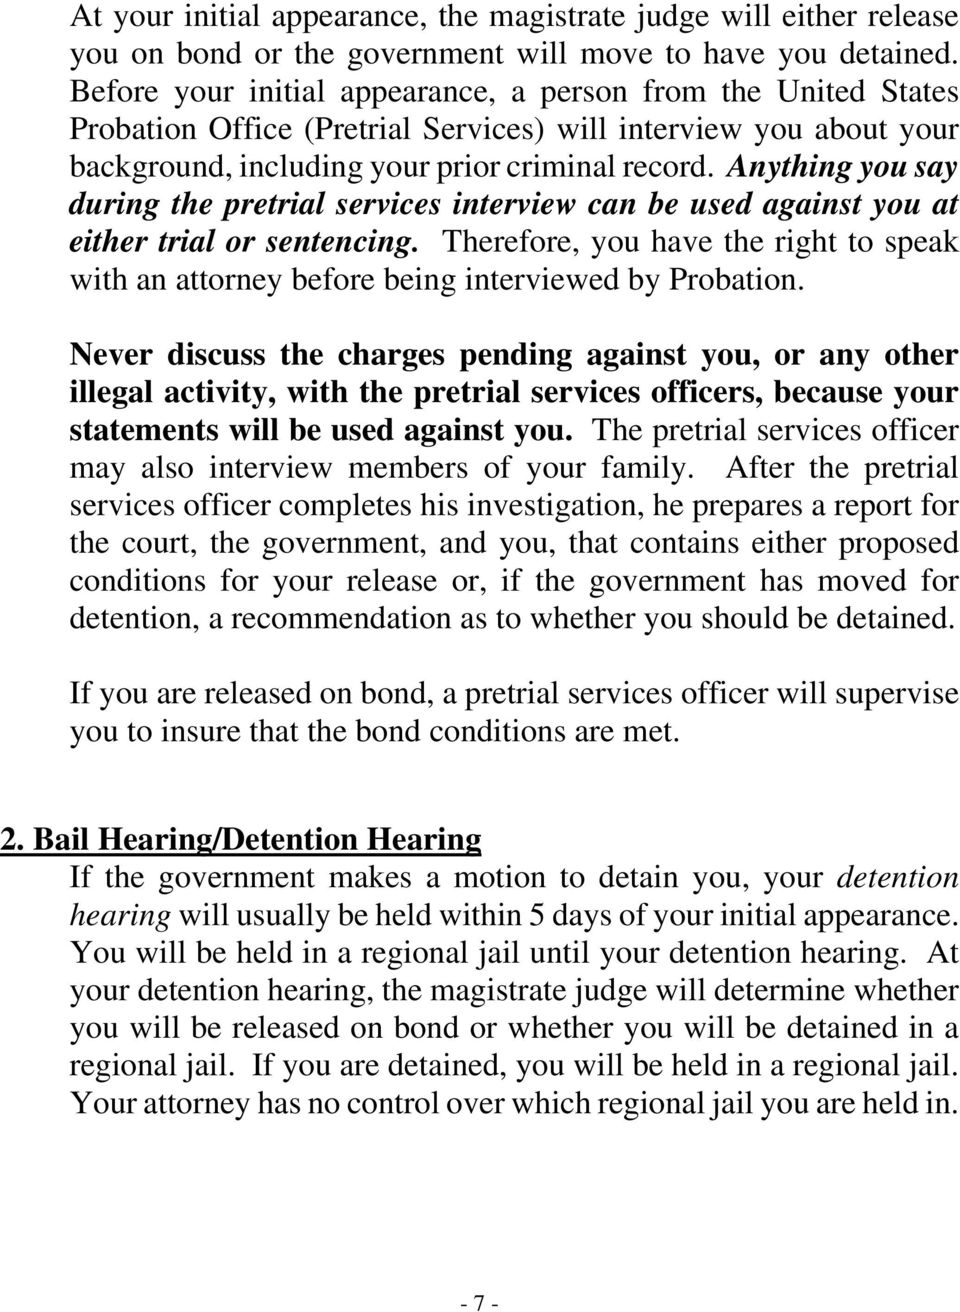 Anything you say during the pretrial services interview can be used against you at either trial or sentencing.